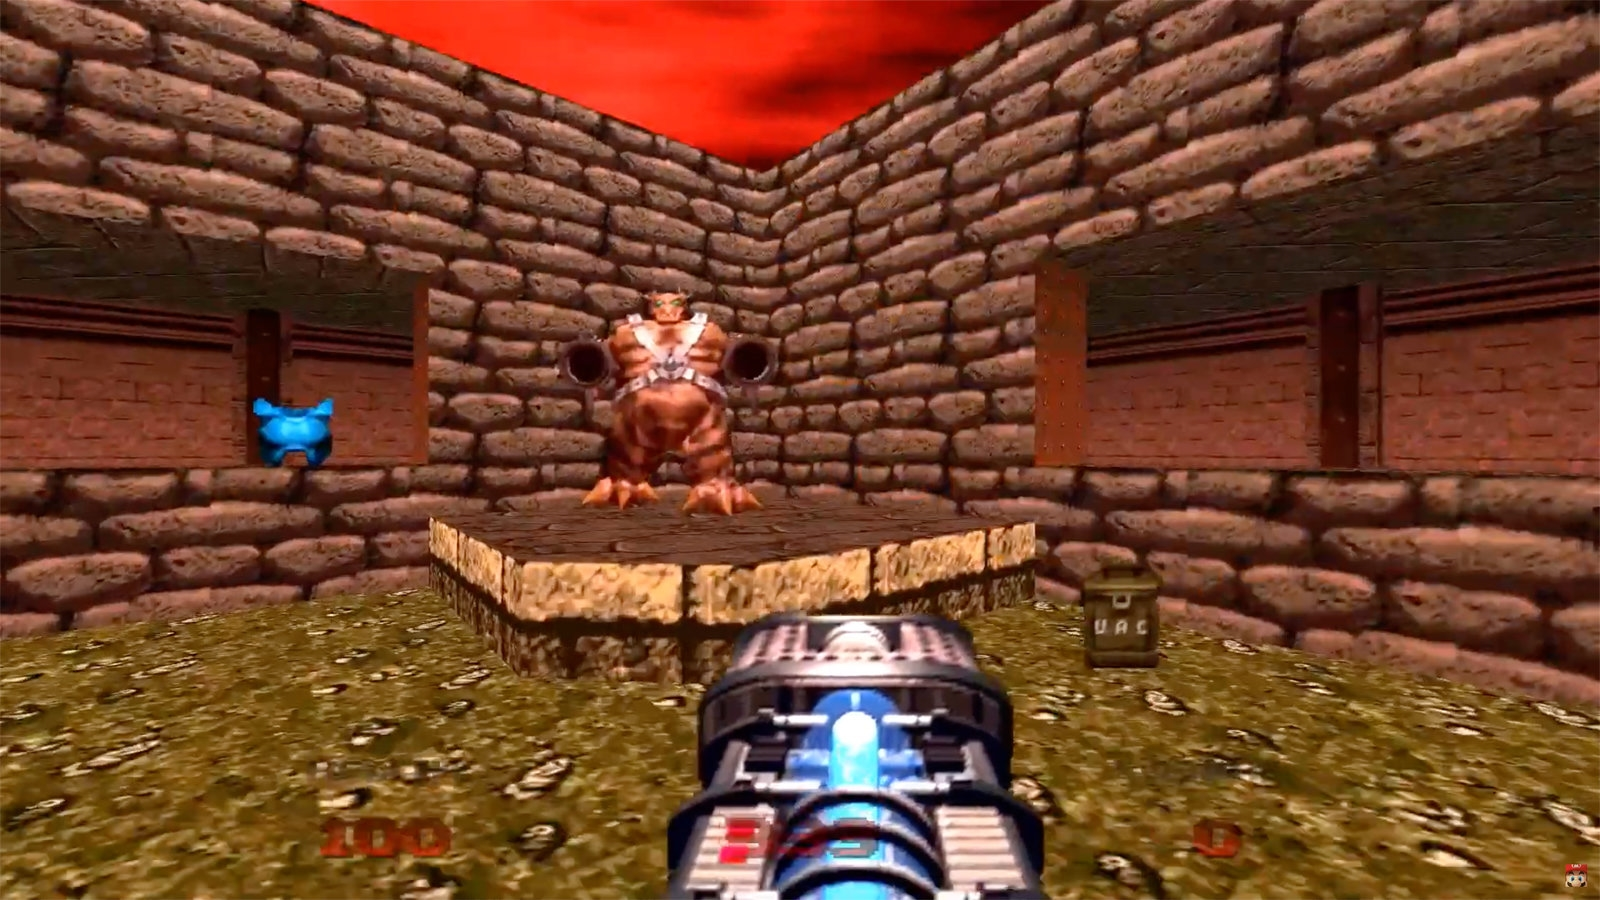 'Doom 64' is reborn on Switch November 22nd | DeviceDaily.com